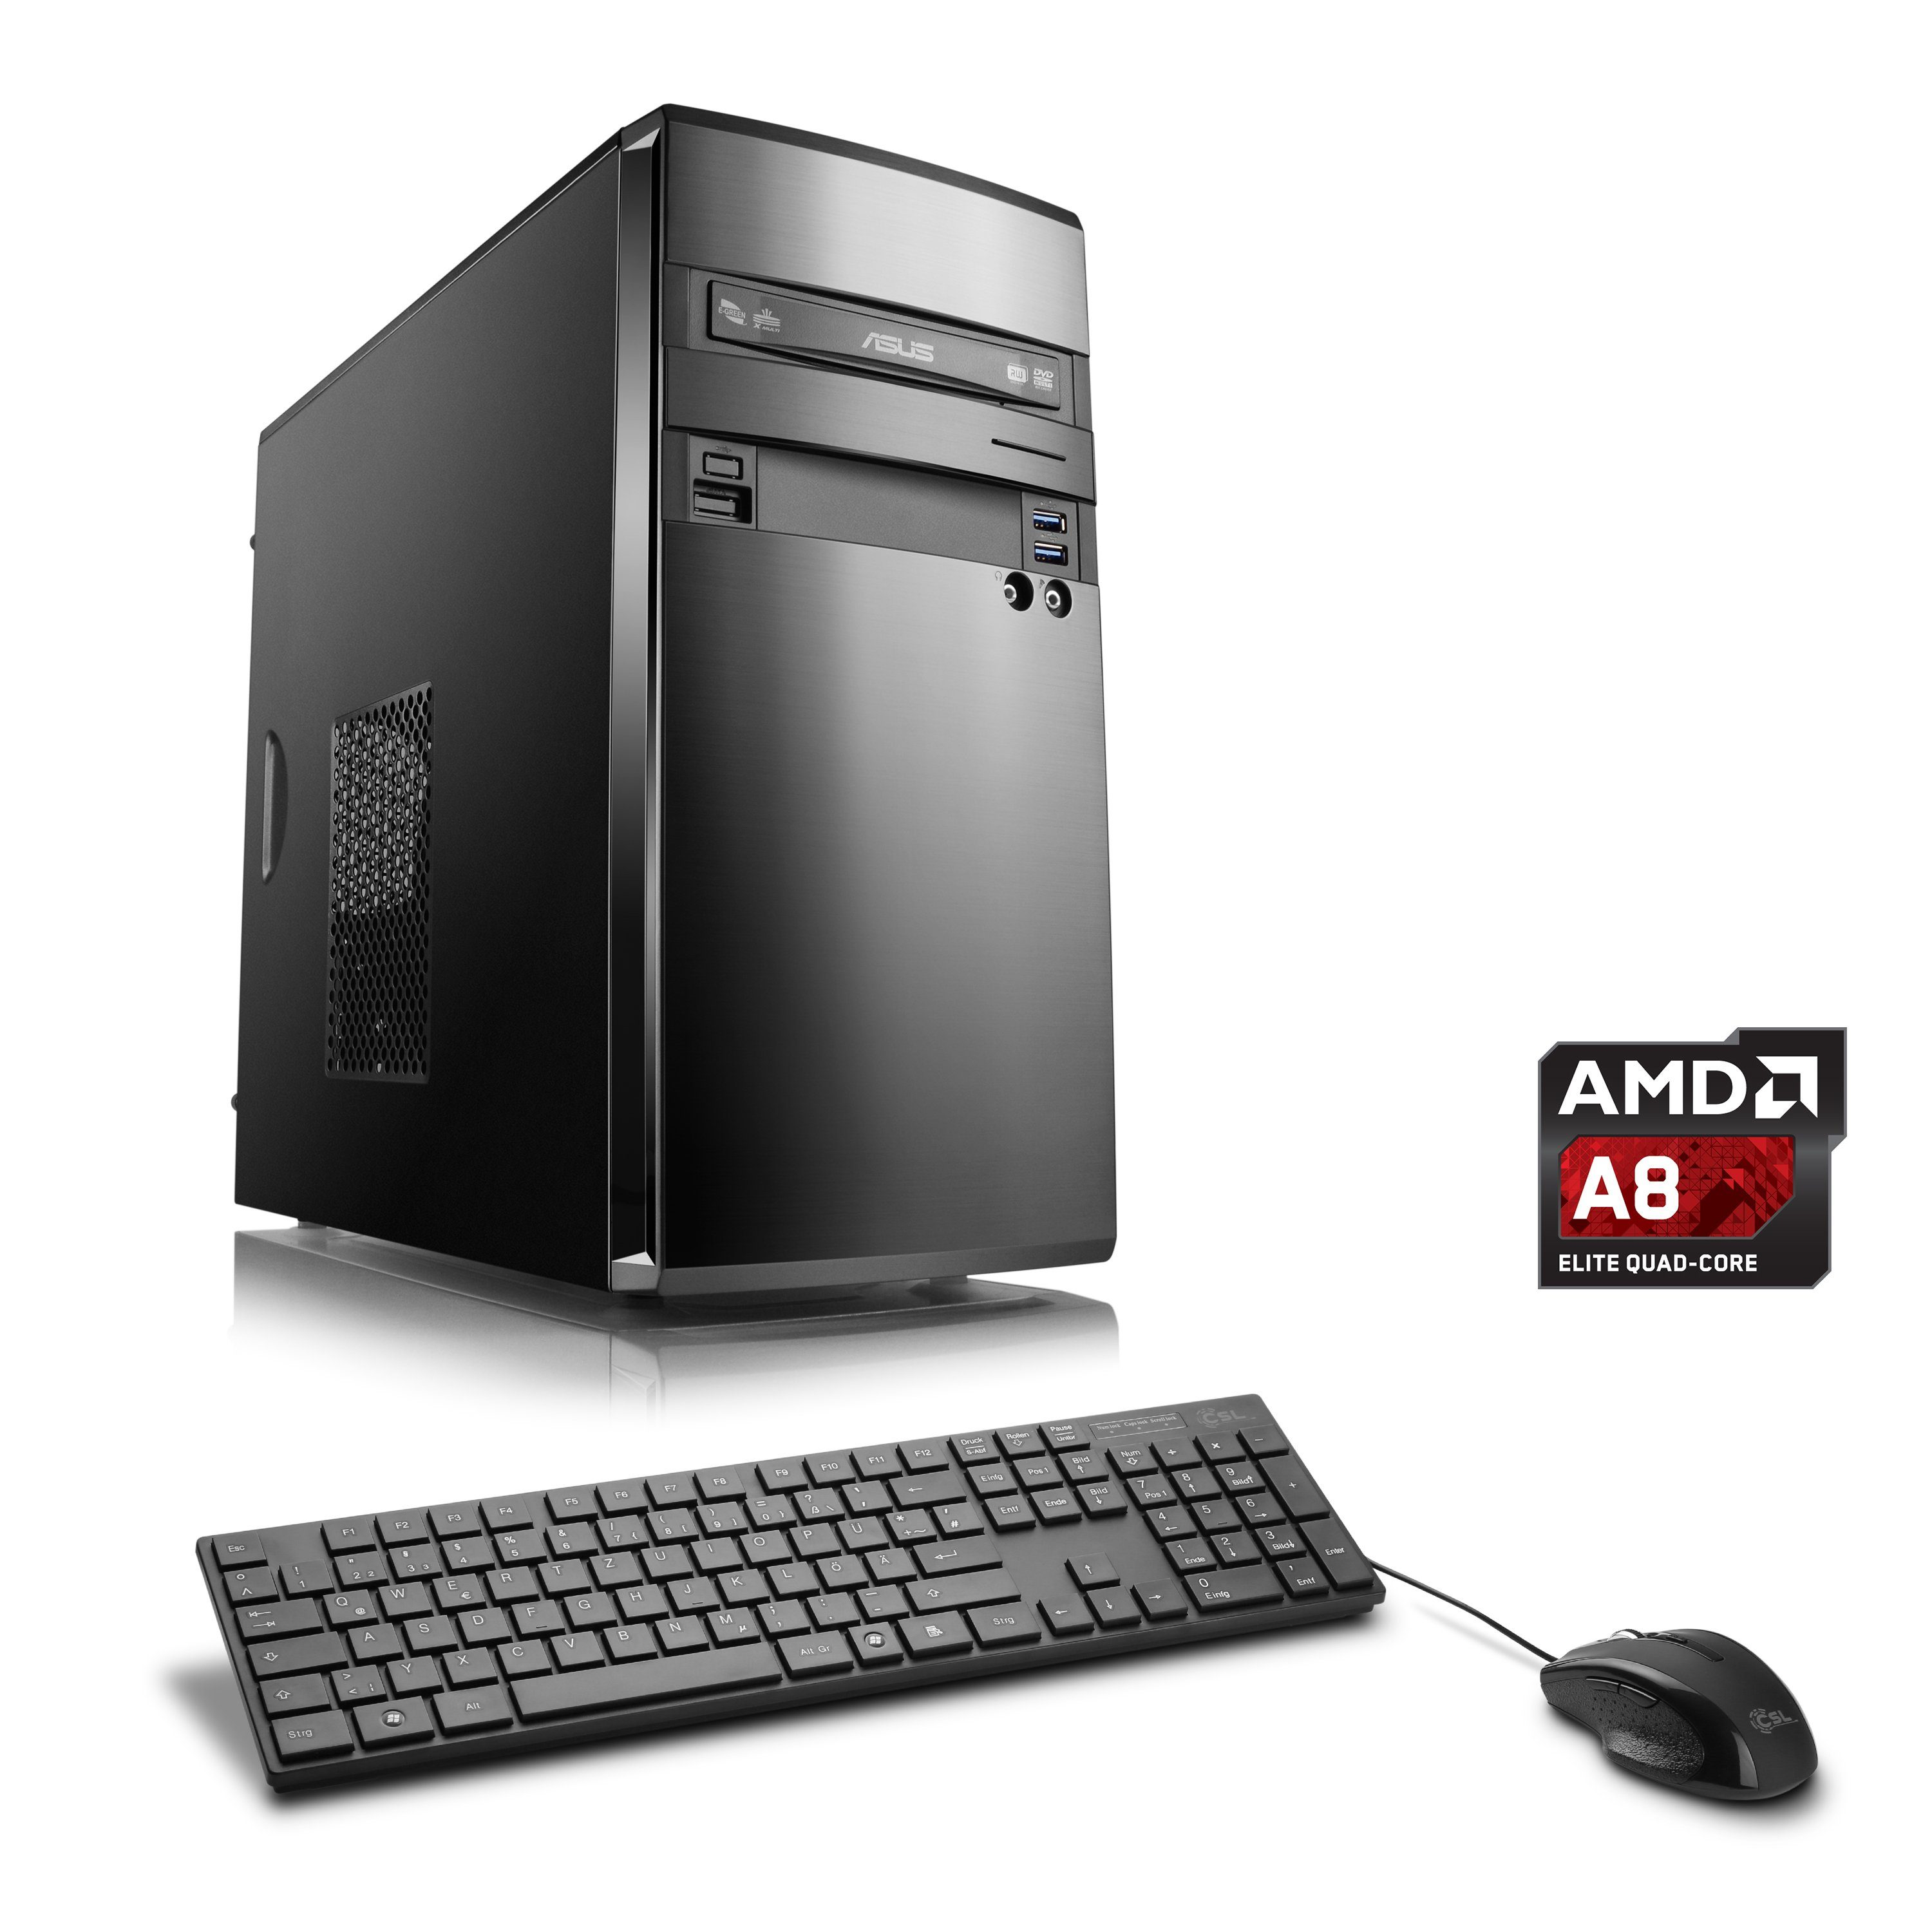 CSL Multimedia PC | AMD A8-7600 | AMD Radeon R7 | 8 GB RAM »Sprint T4834 Windows 10 Home«